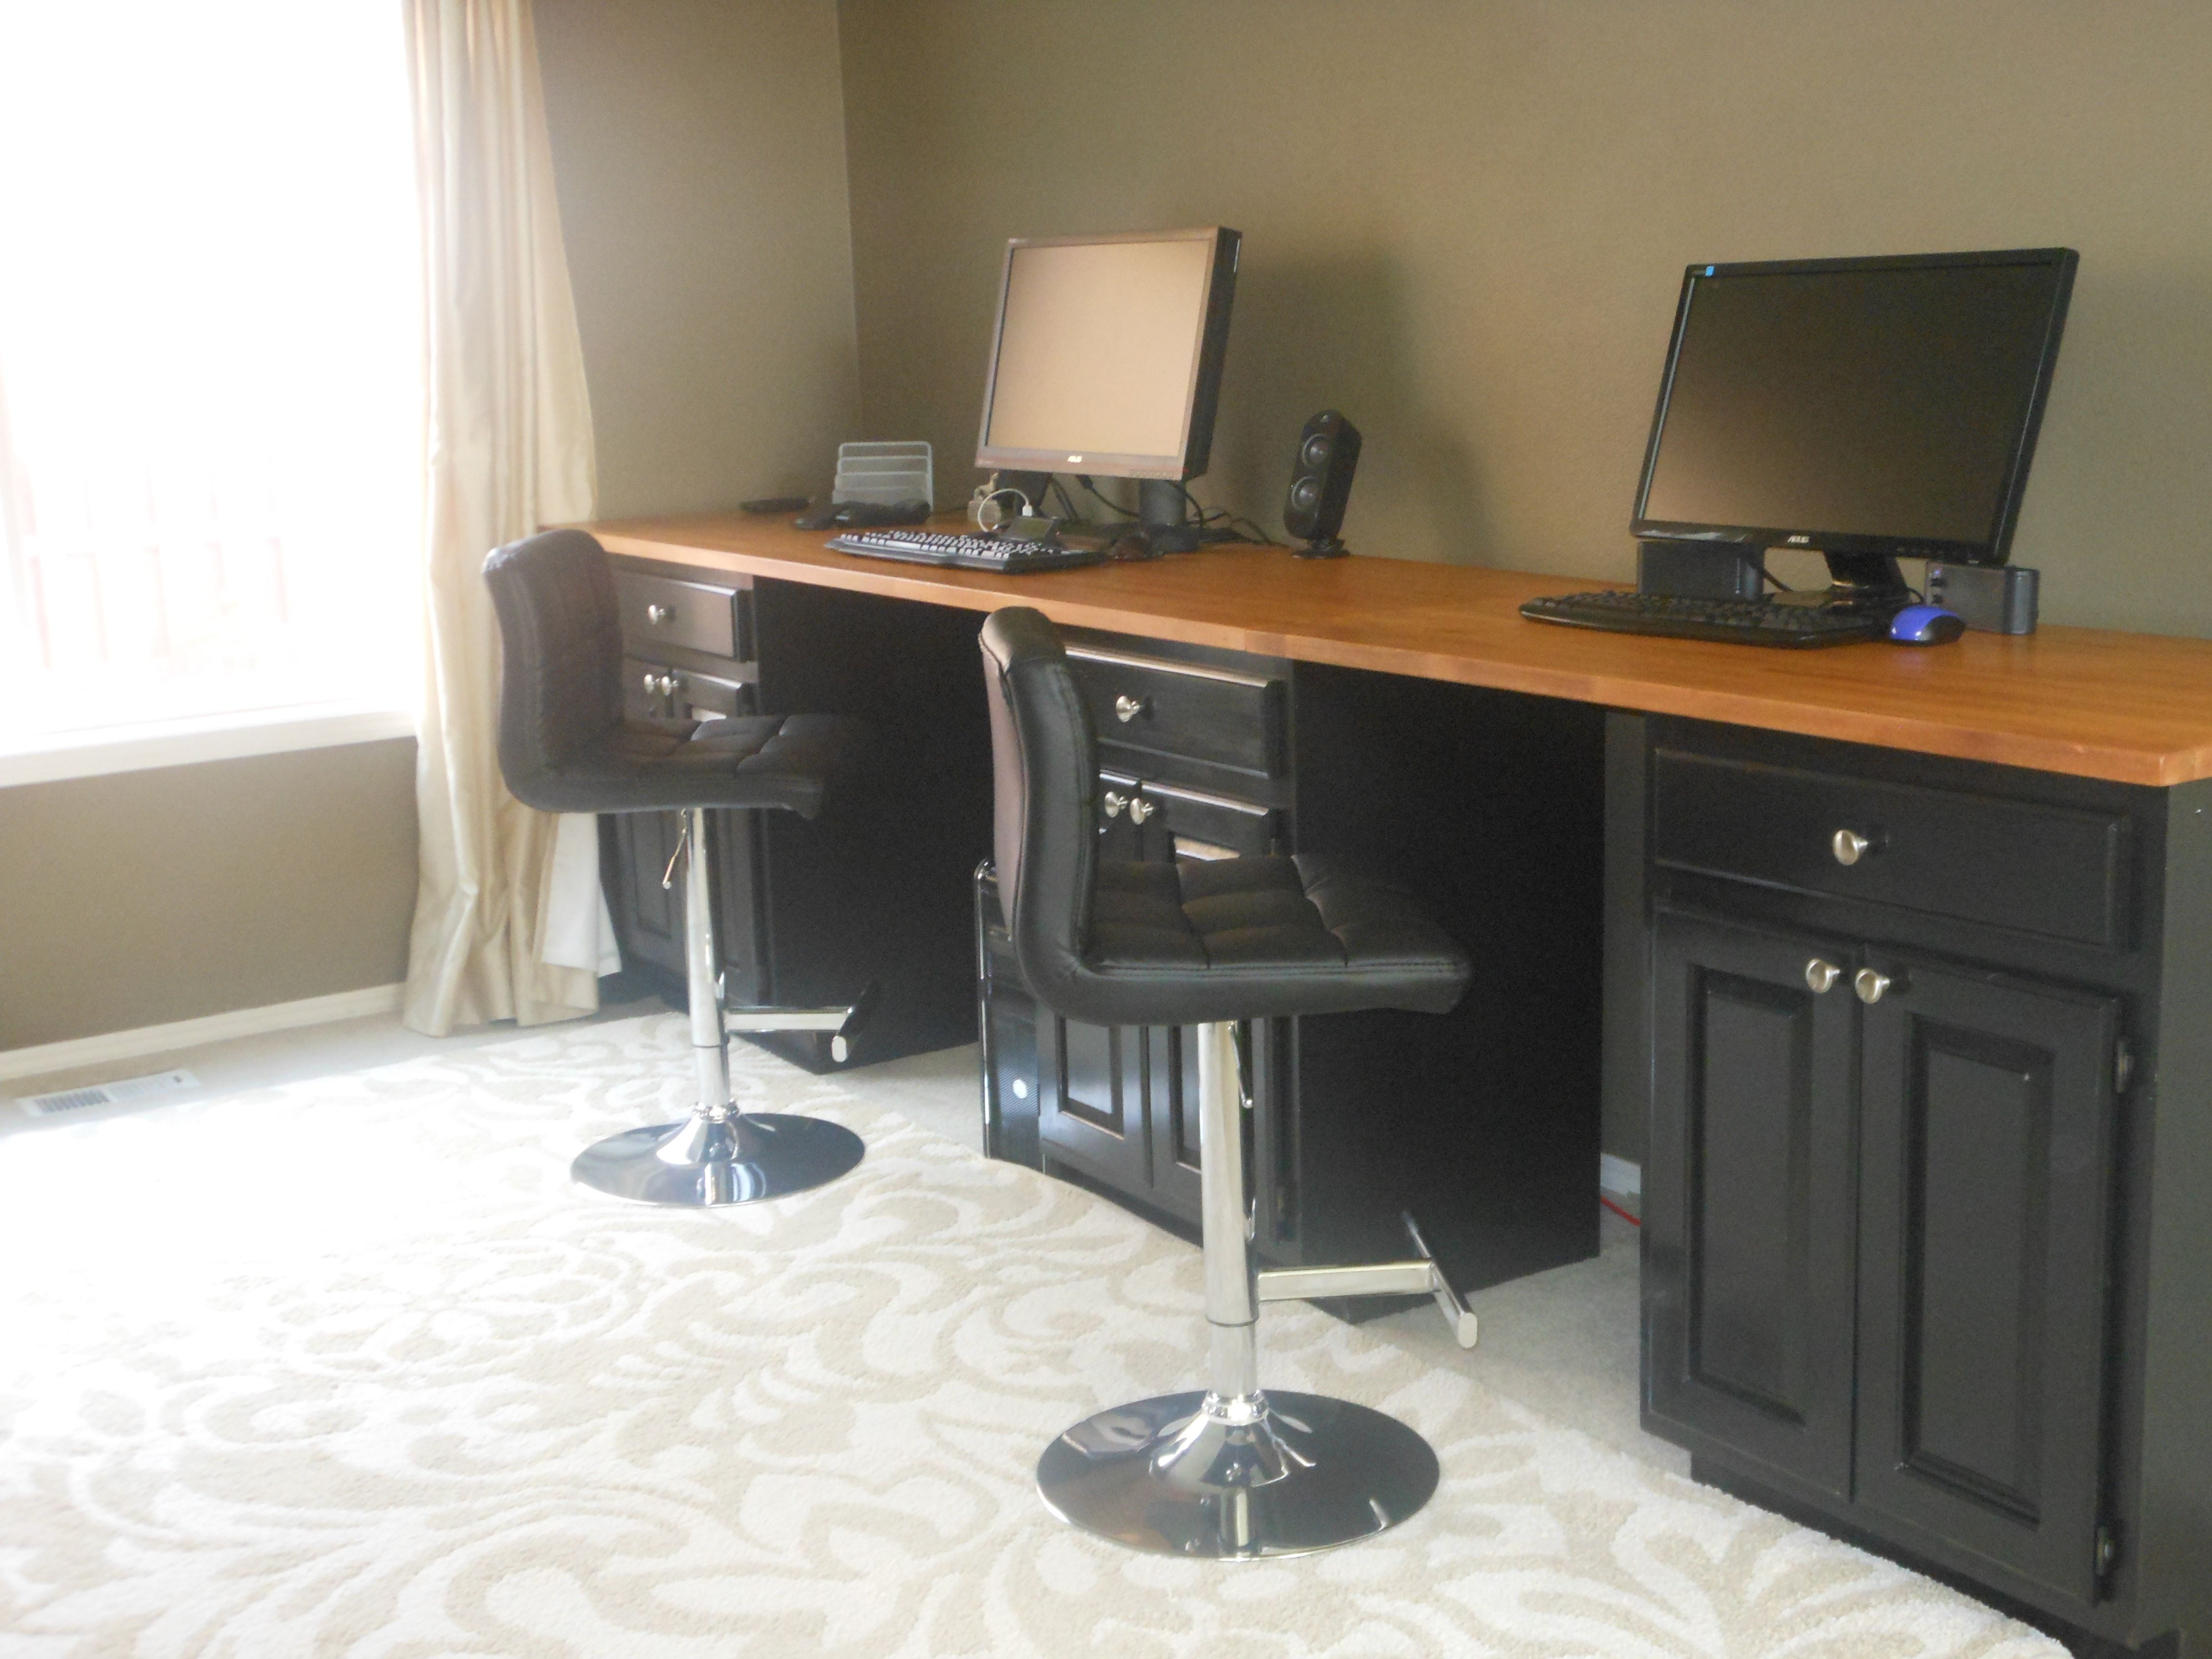 Standing Computer Lab Desk Made From Old Painted Kitchen Cabinets